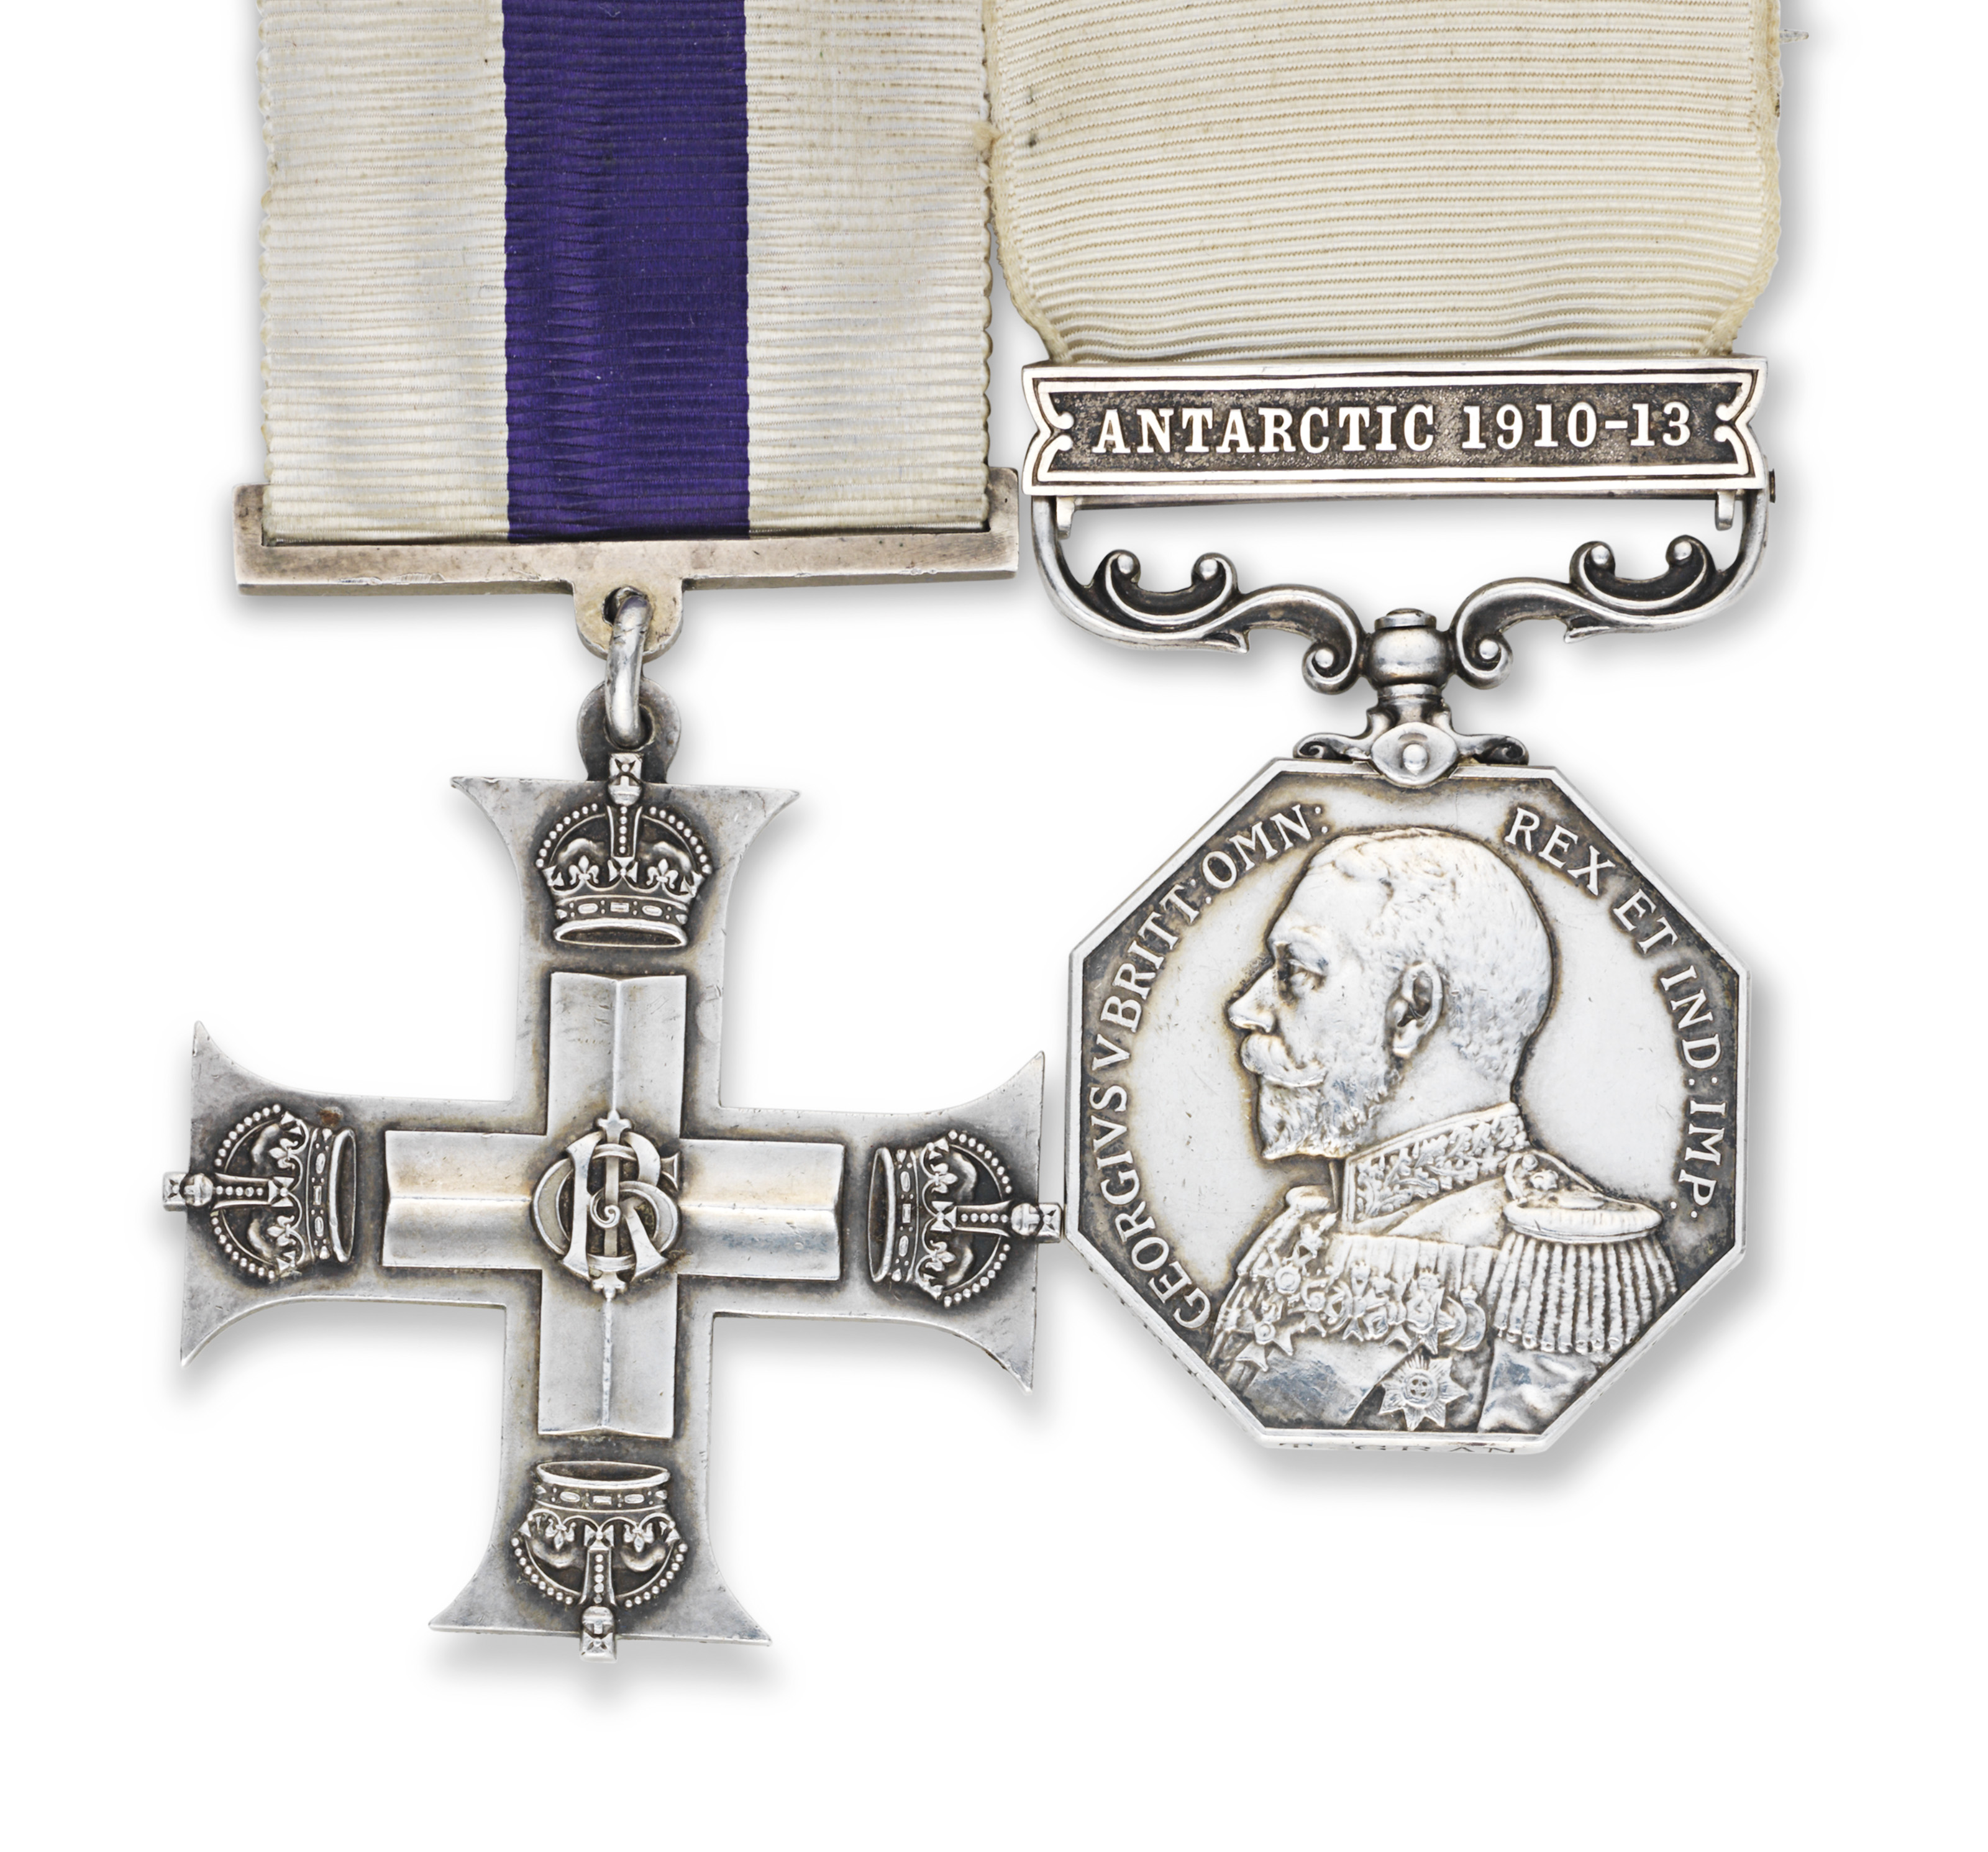 GRAN, Tryggve (1888-1980). Medals and awards, comprising: